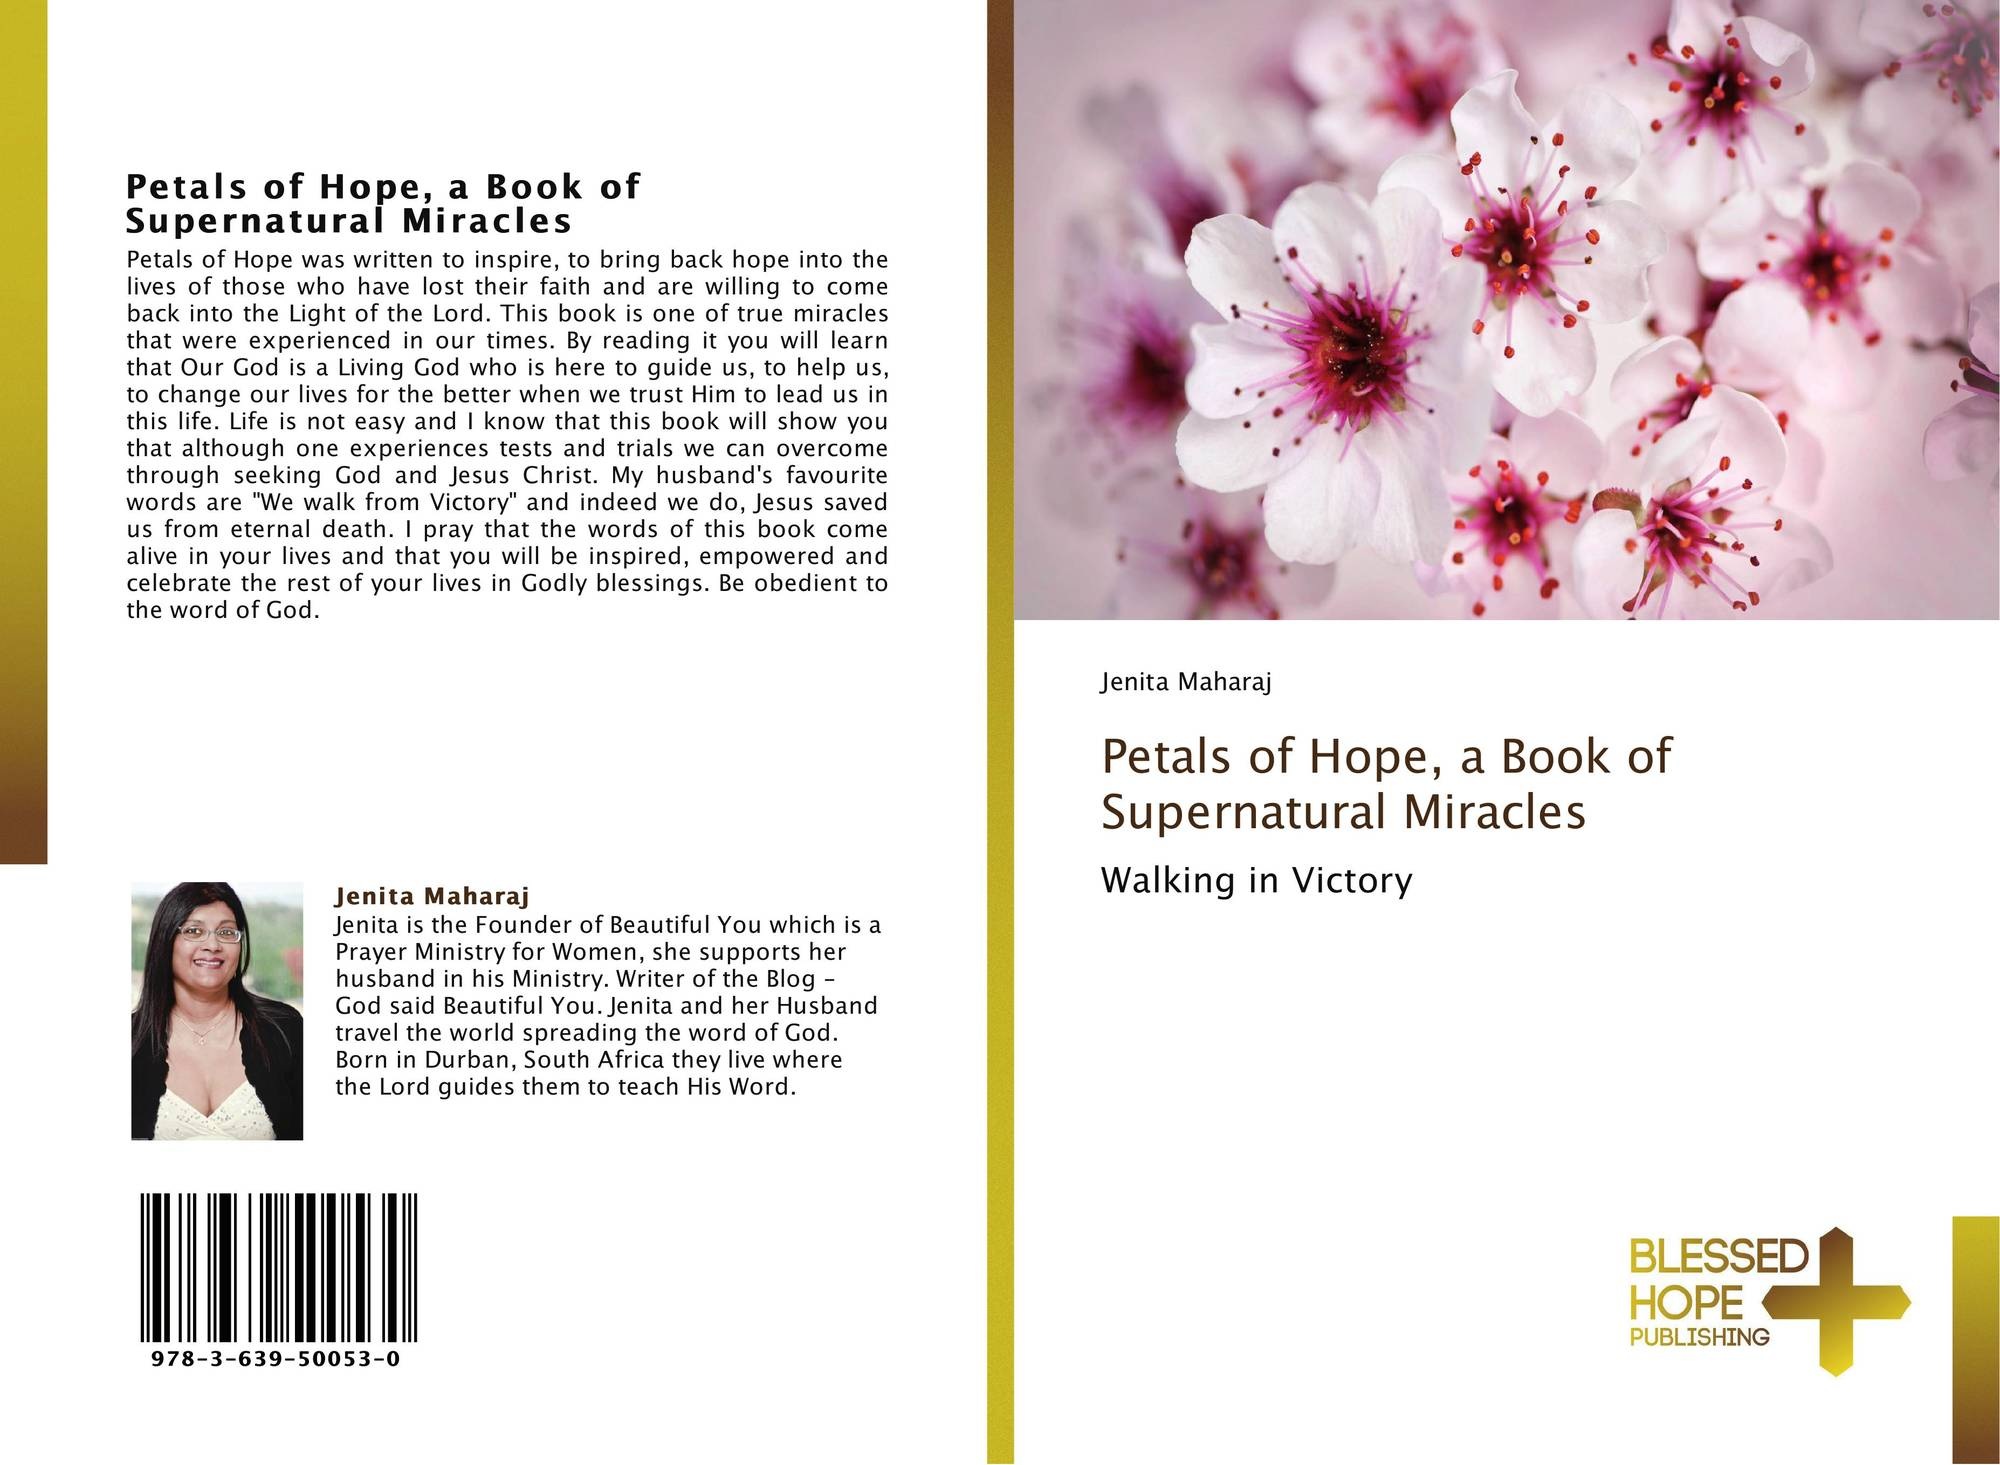 Petals of Hope, a Book of Supernatural Miracles